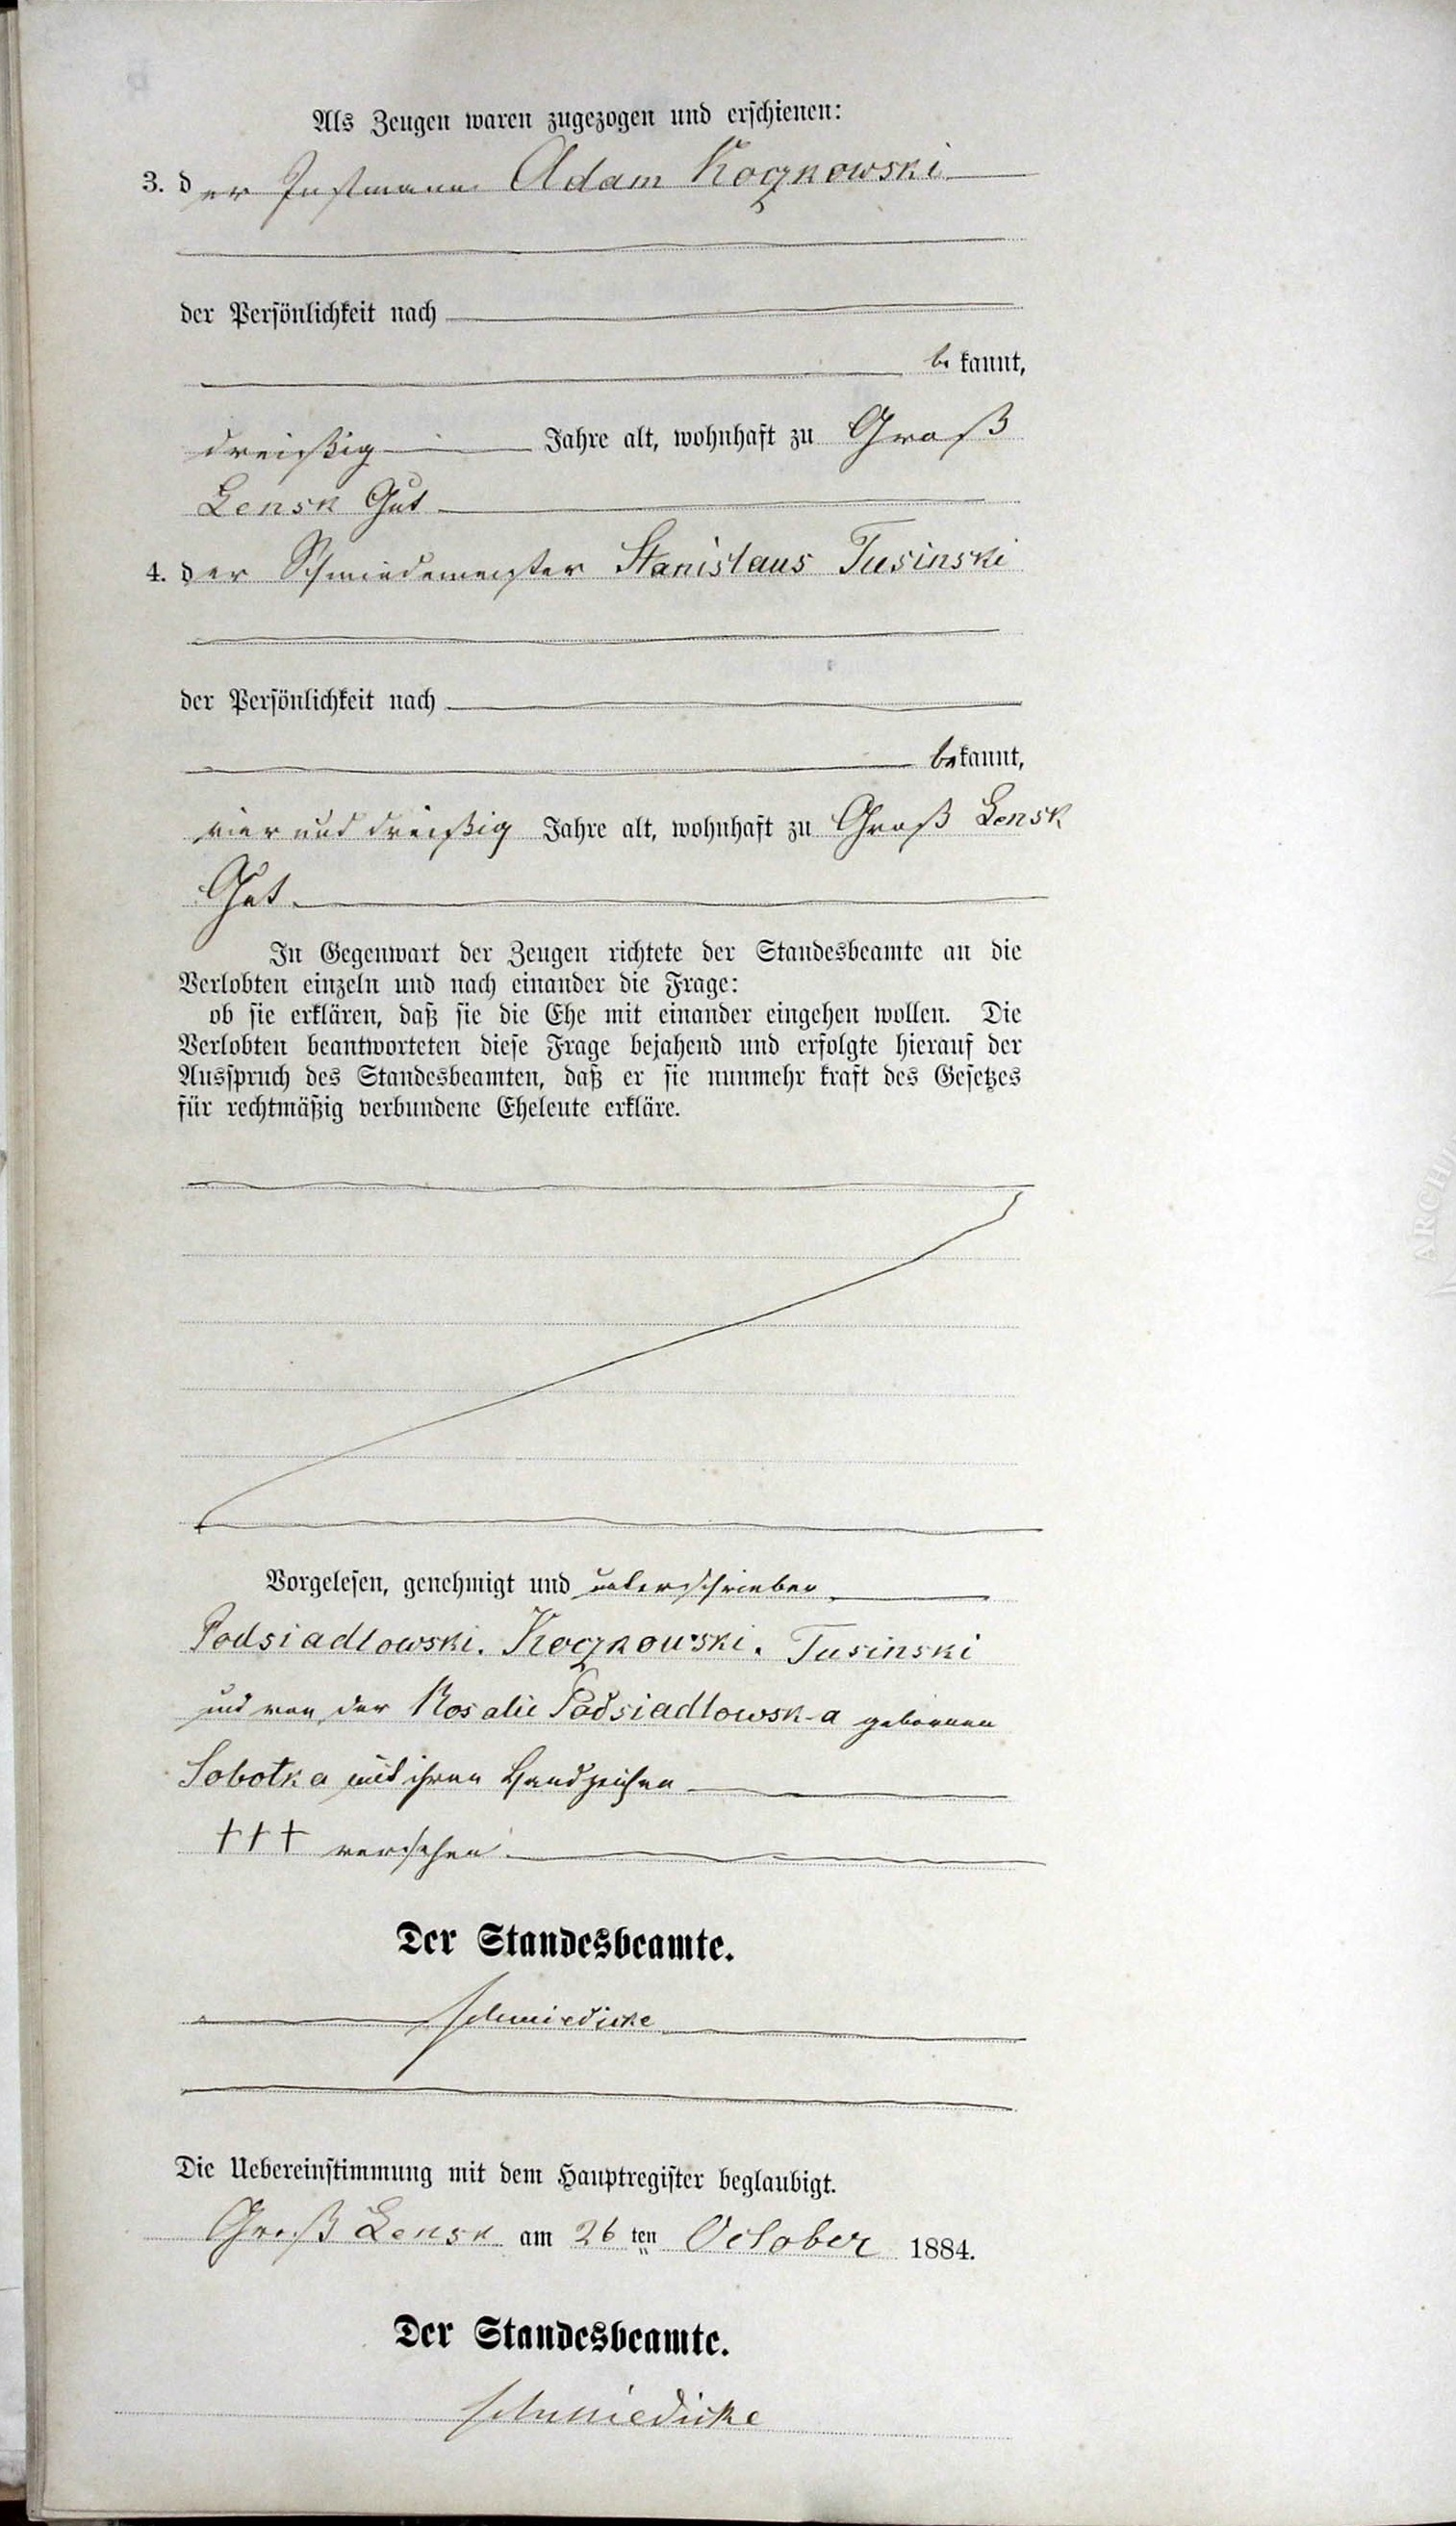 Franz Podsiadłowski (MP bro) marriage 1884 p2 6207 (1).jpg